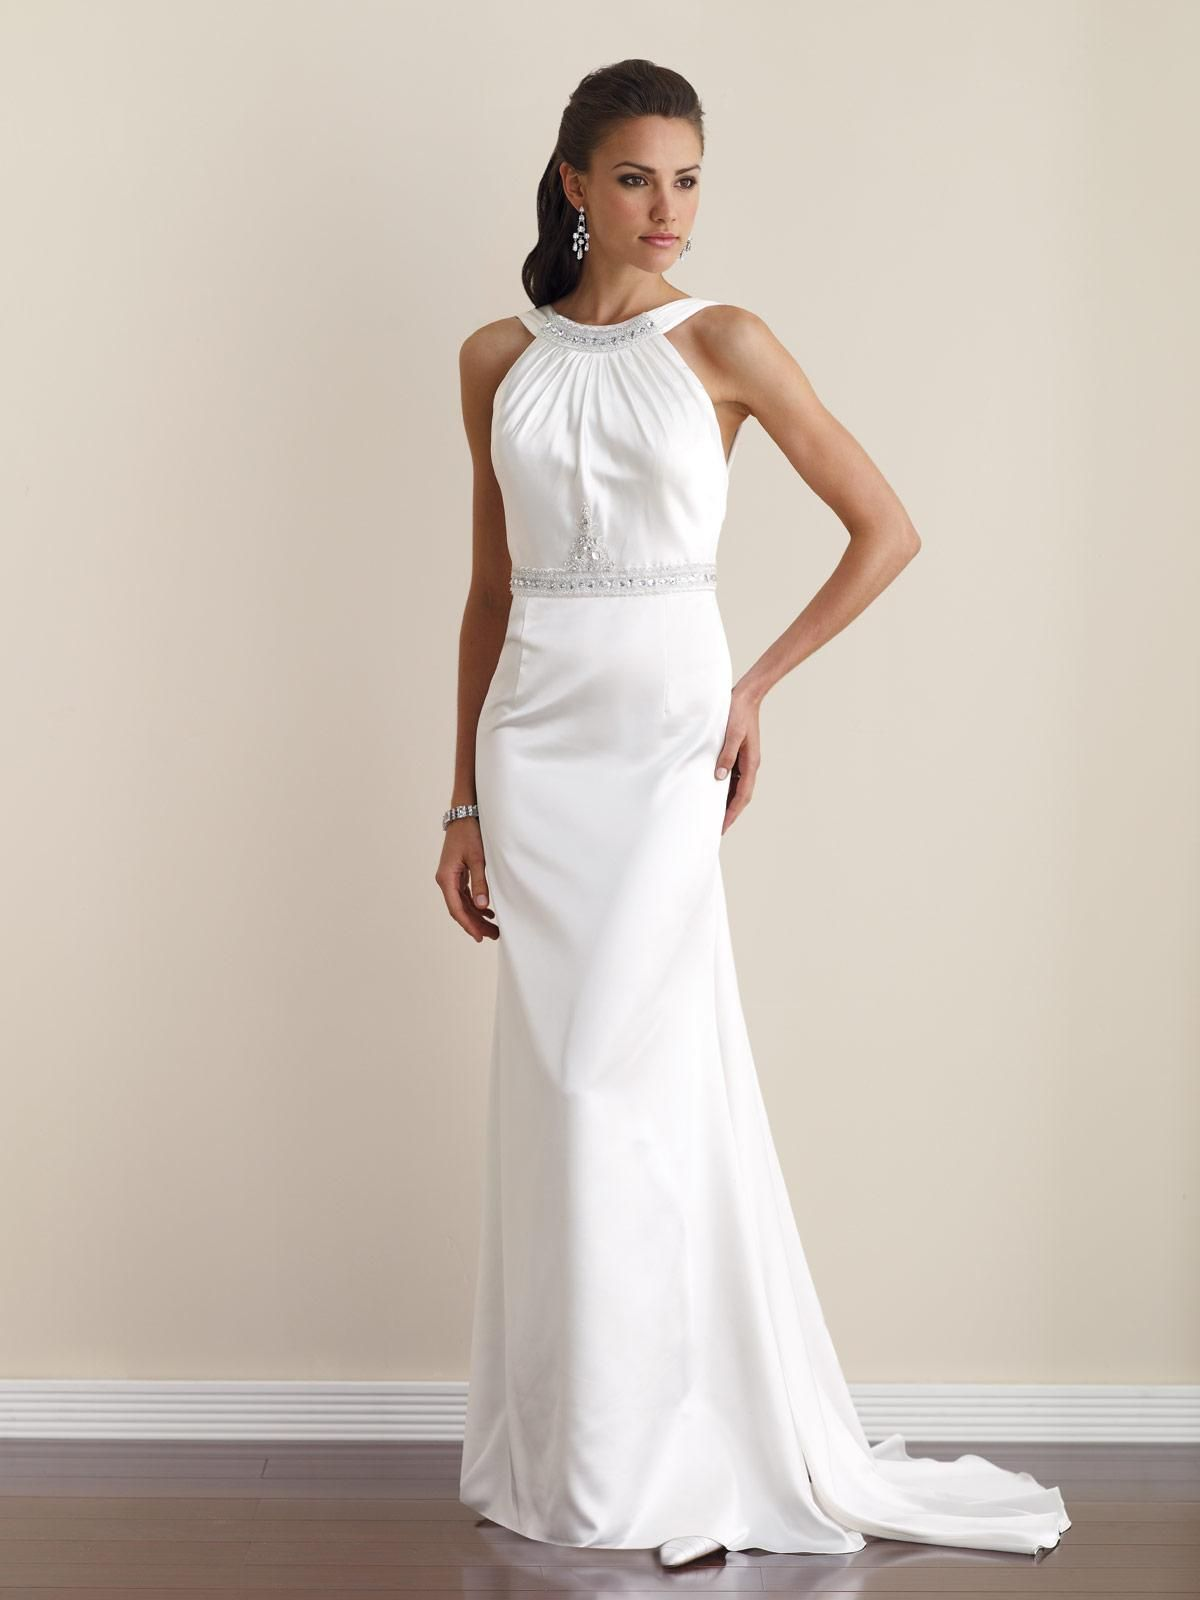 Elegant Wedding Gowns | Elegant High Neck Beaded Sheath Informal ...